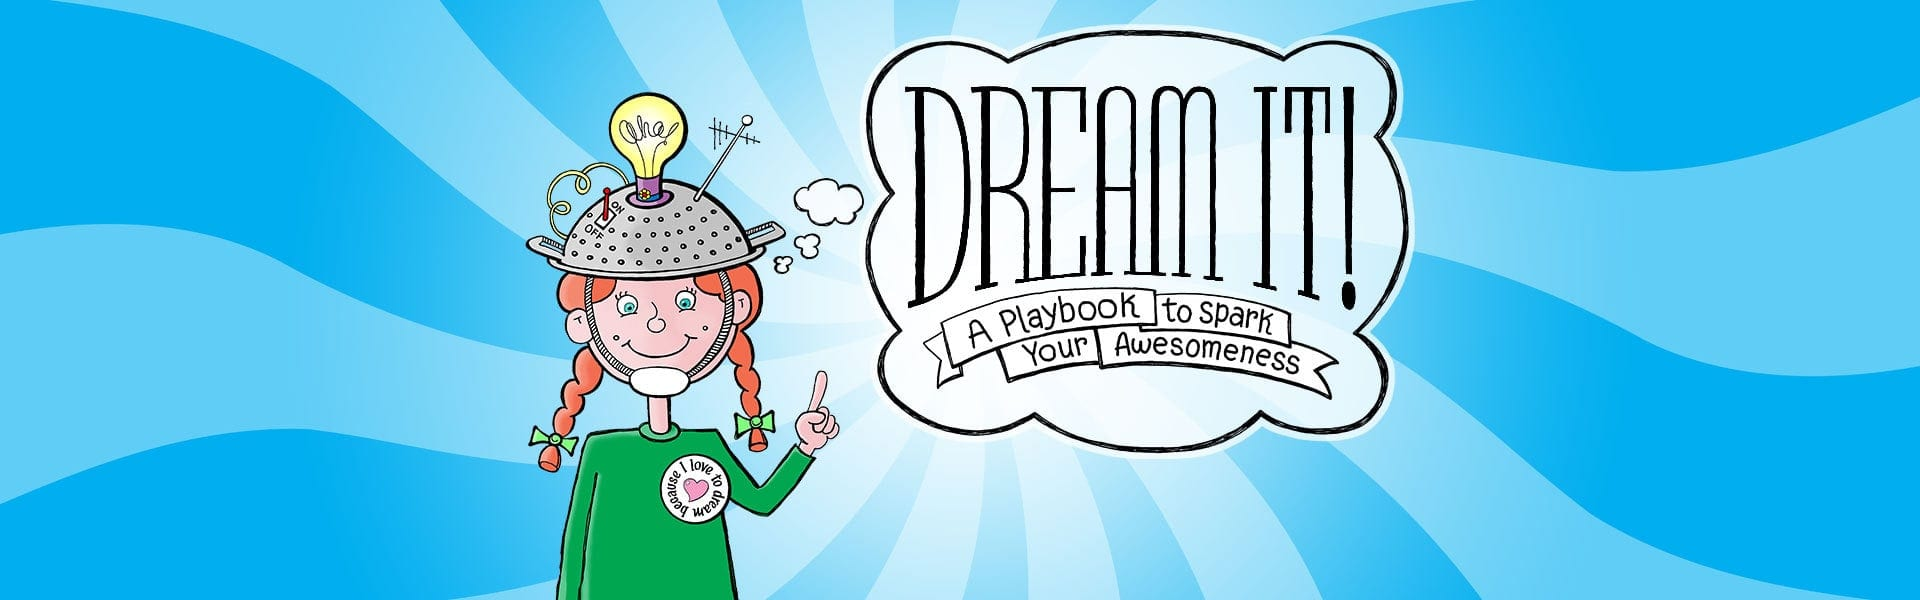 You forget 90 percent of your dreams clipart clipart images.